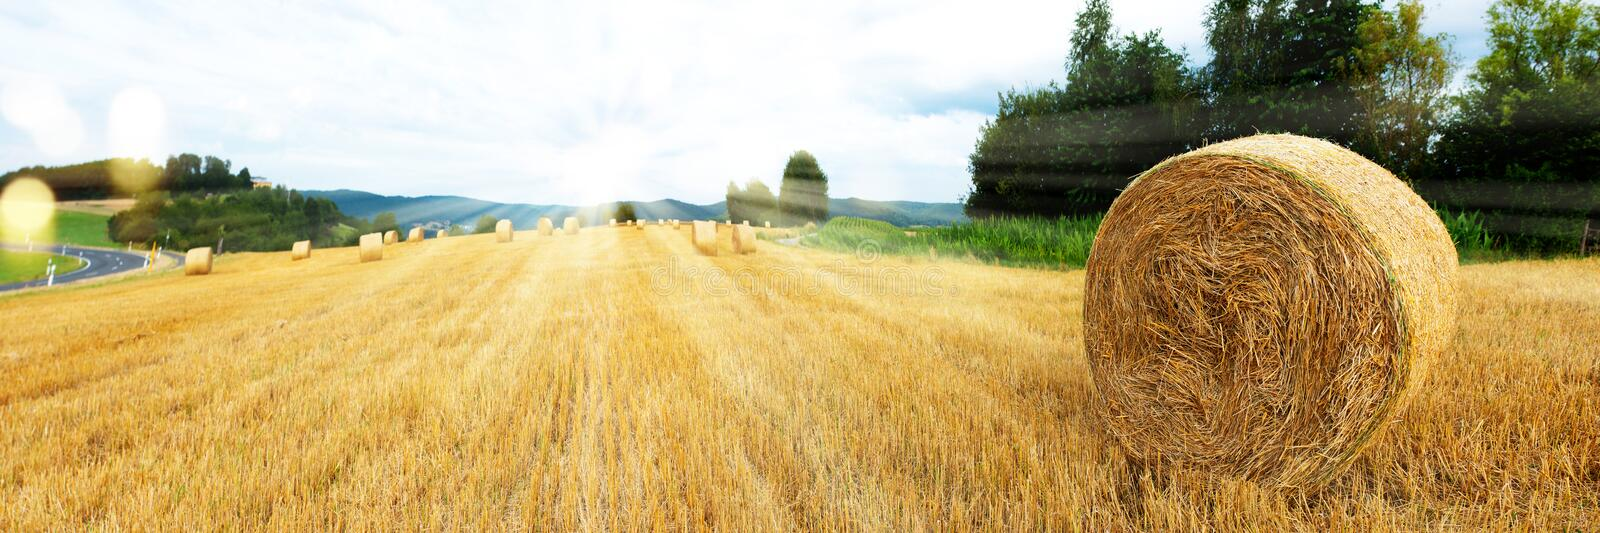 Harvested grain field and straw bales stock photography